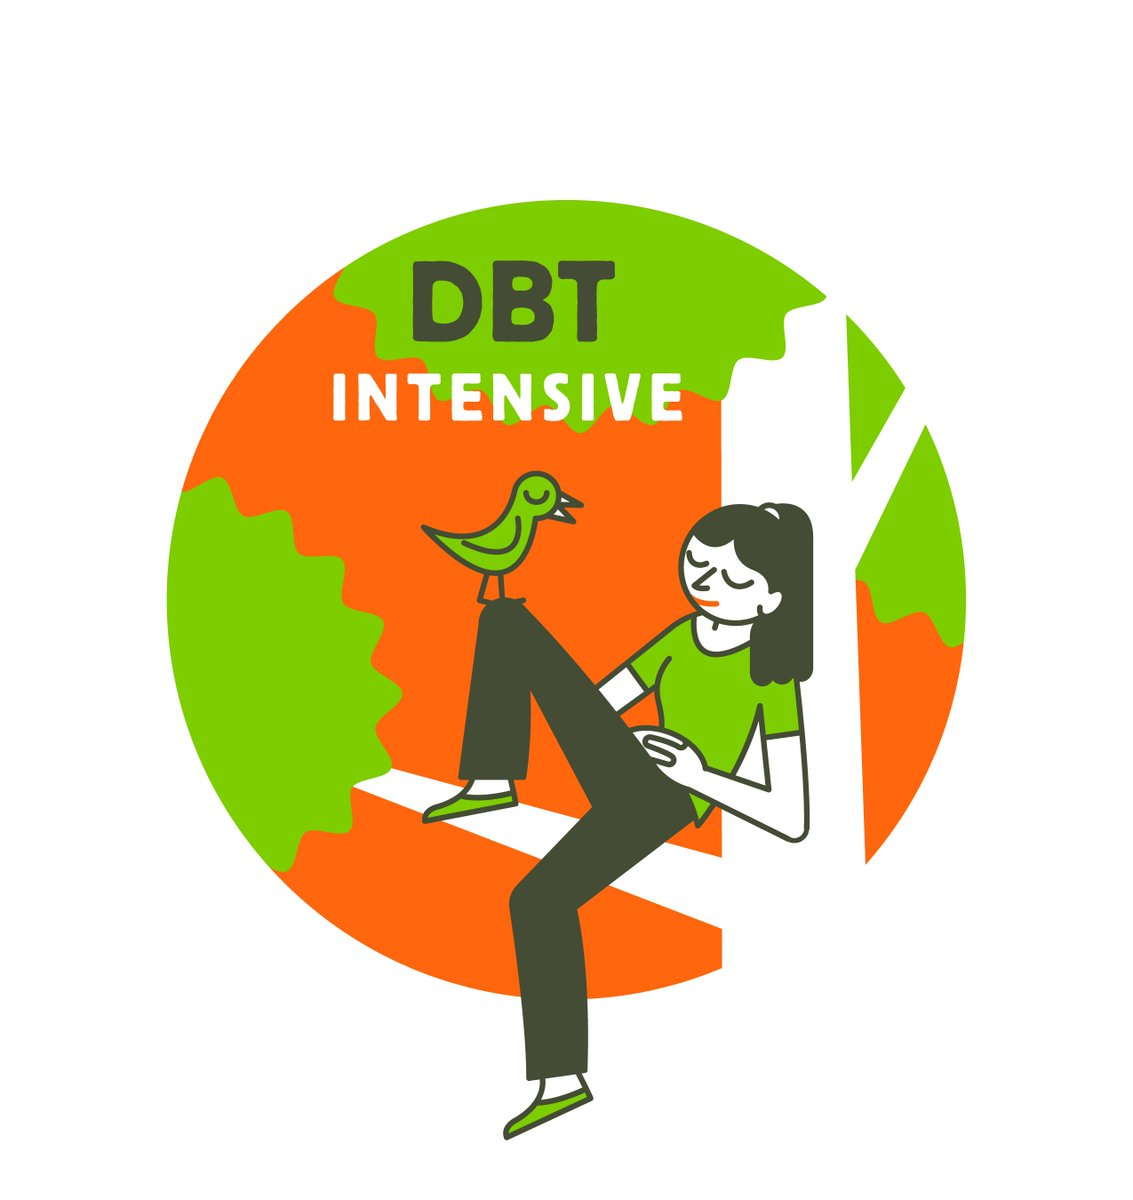 Potomac Pathways DBT therapists are intensively trained by-- and have regular consultation with--Behavioral Tech. Find out more here: https://t.co/MX21st0SAo